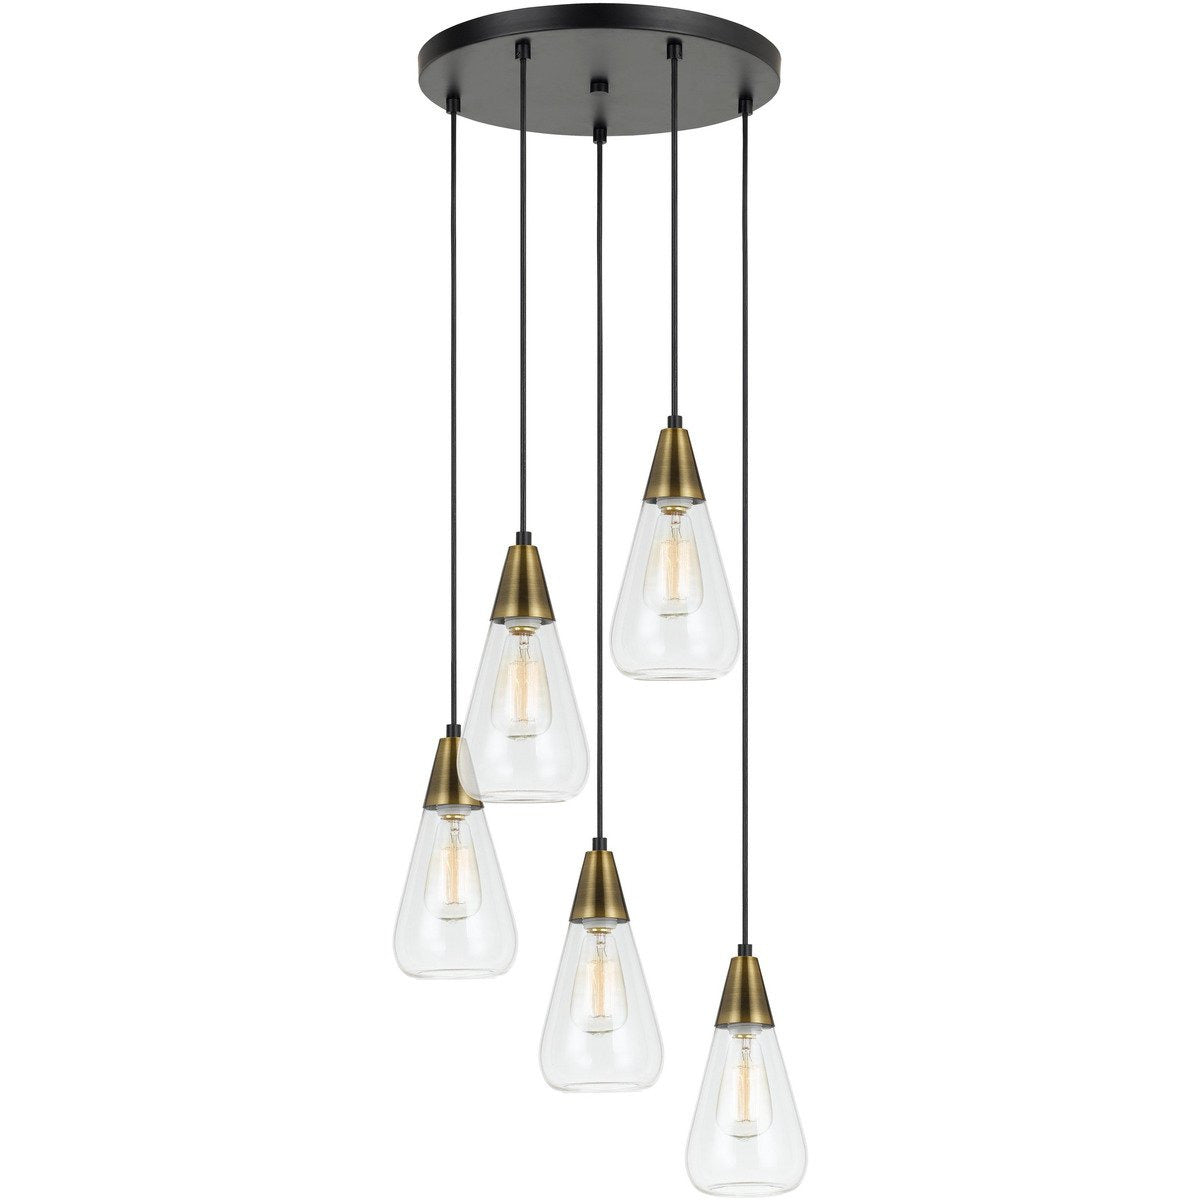 Chandeliers & Pendants - 5 Conical Shaped Glass Pendant Lighting With Canopy And Brass Accent, Clear